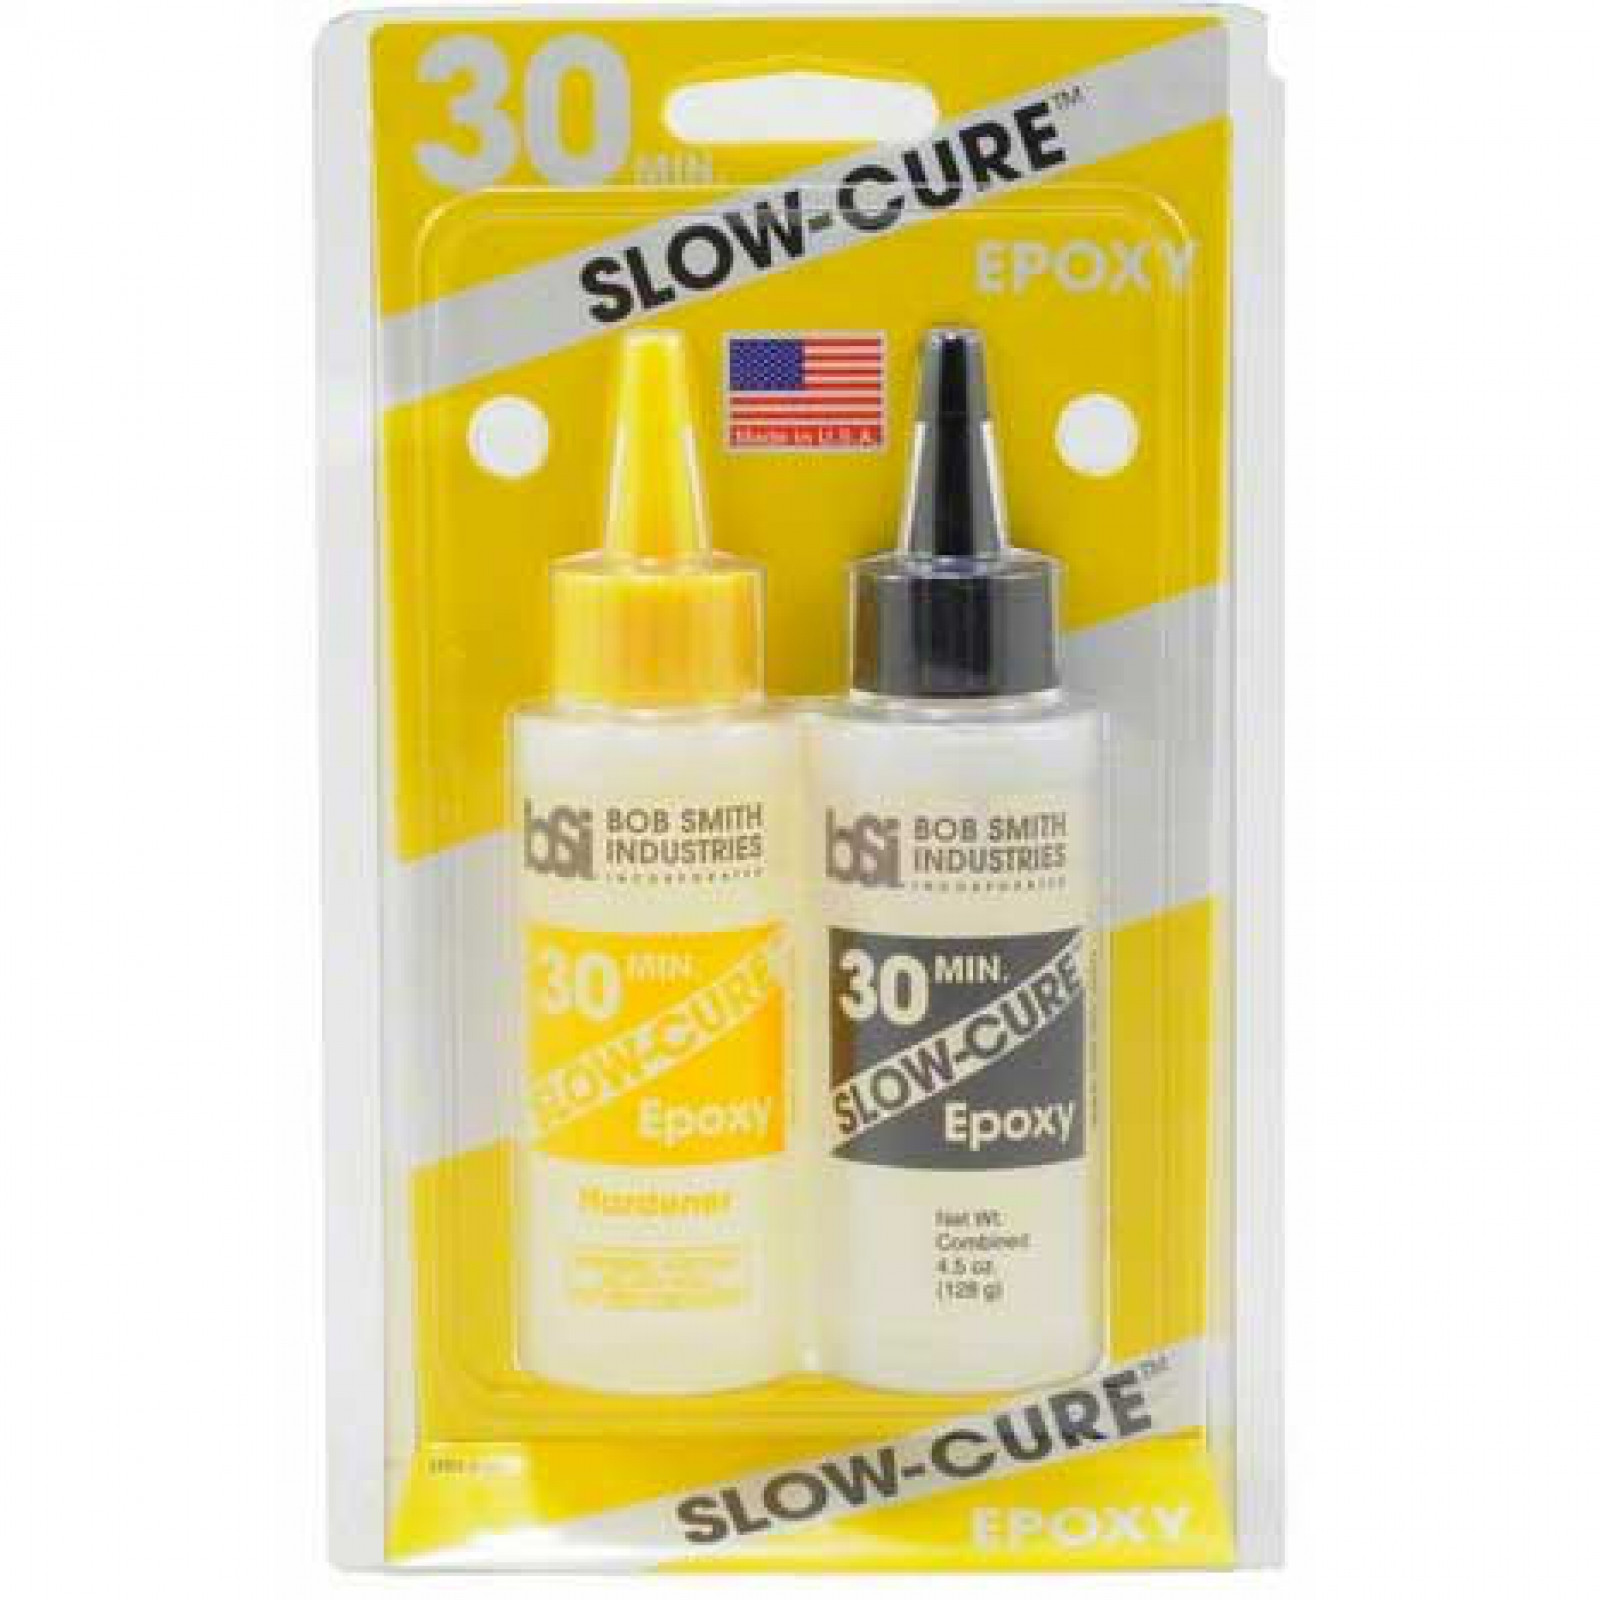 SLOW-CURE 30-MINUTE EPOXY, 4.5 OZ